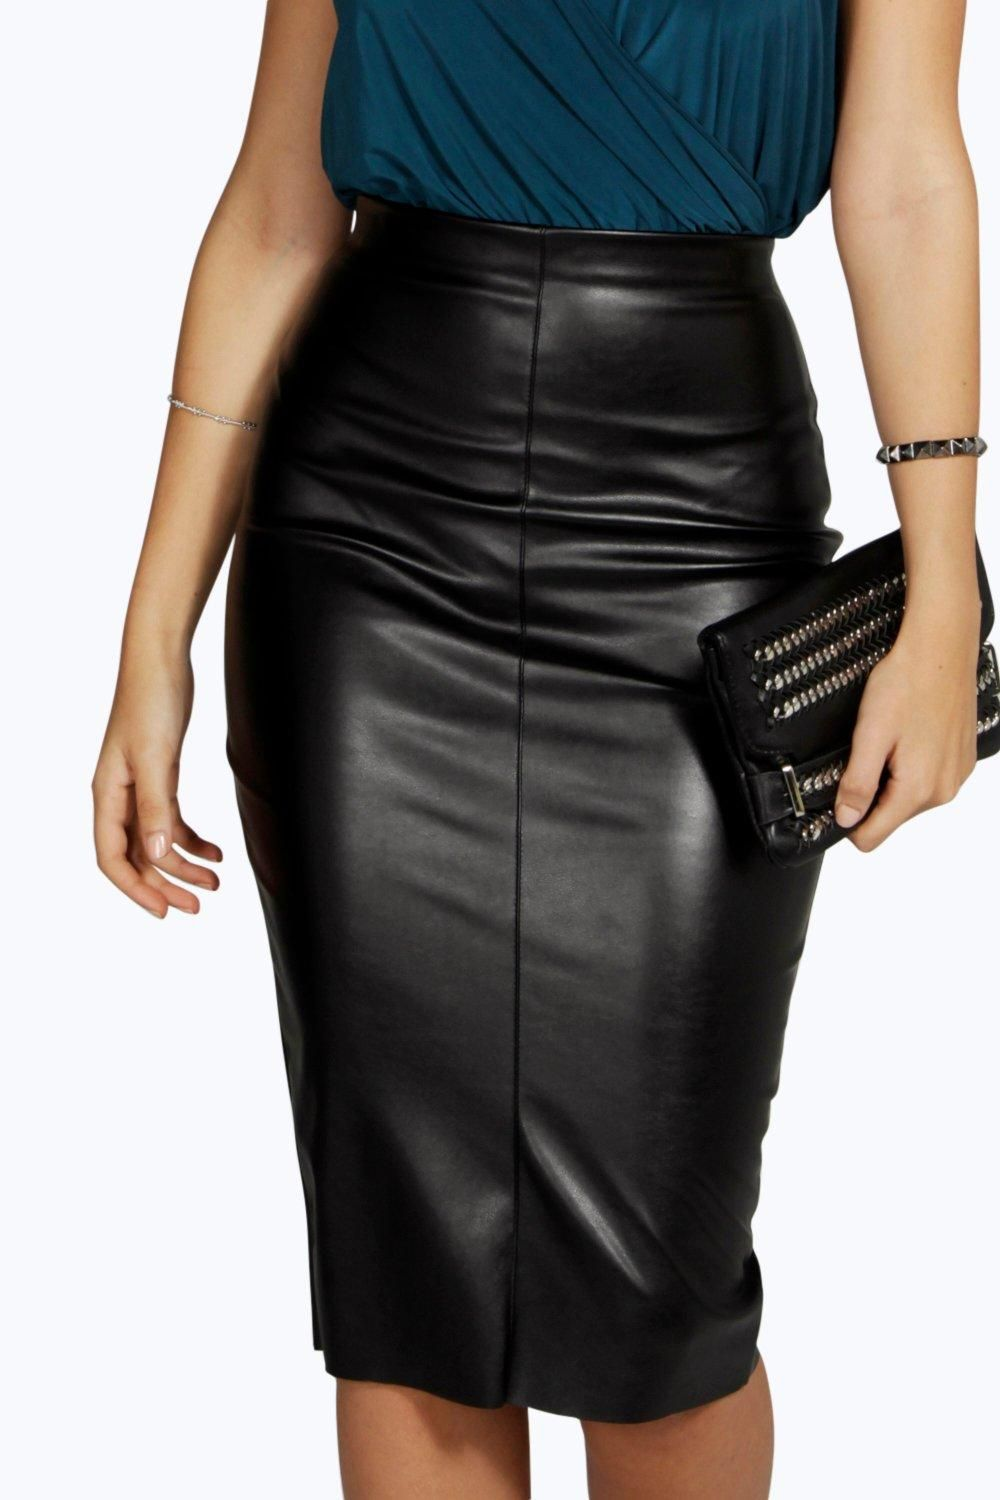 Black Leather Look Midi Skirt - Dress Ala